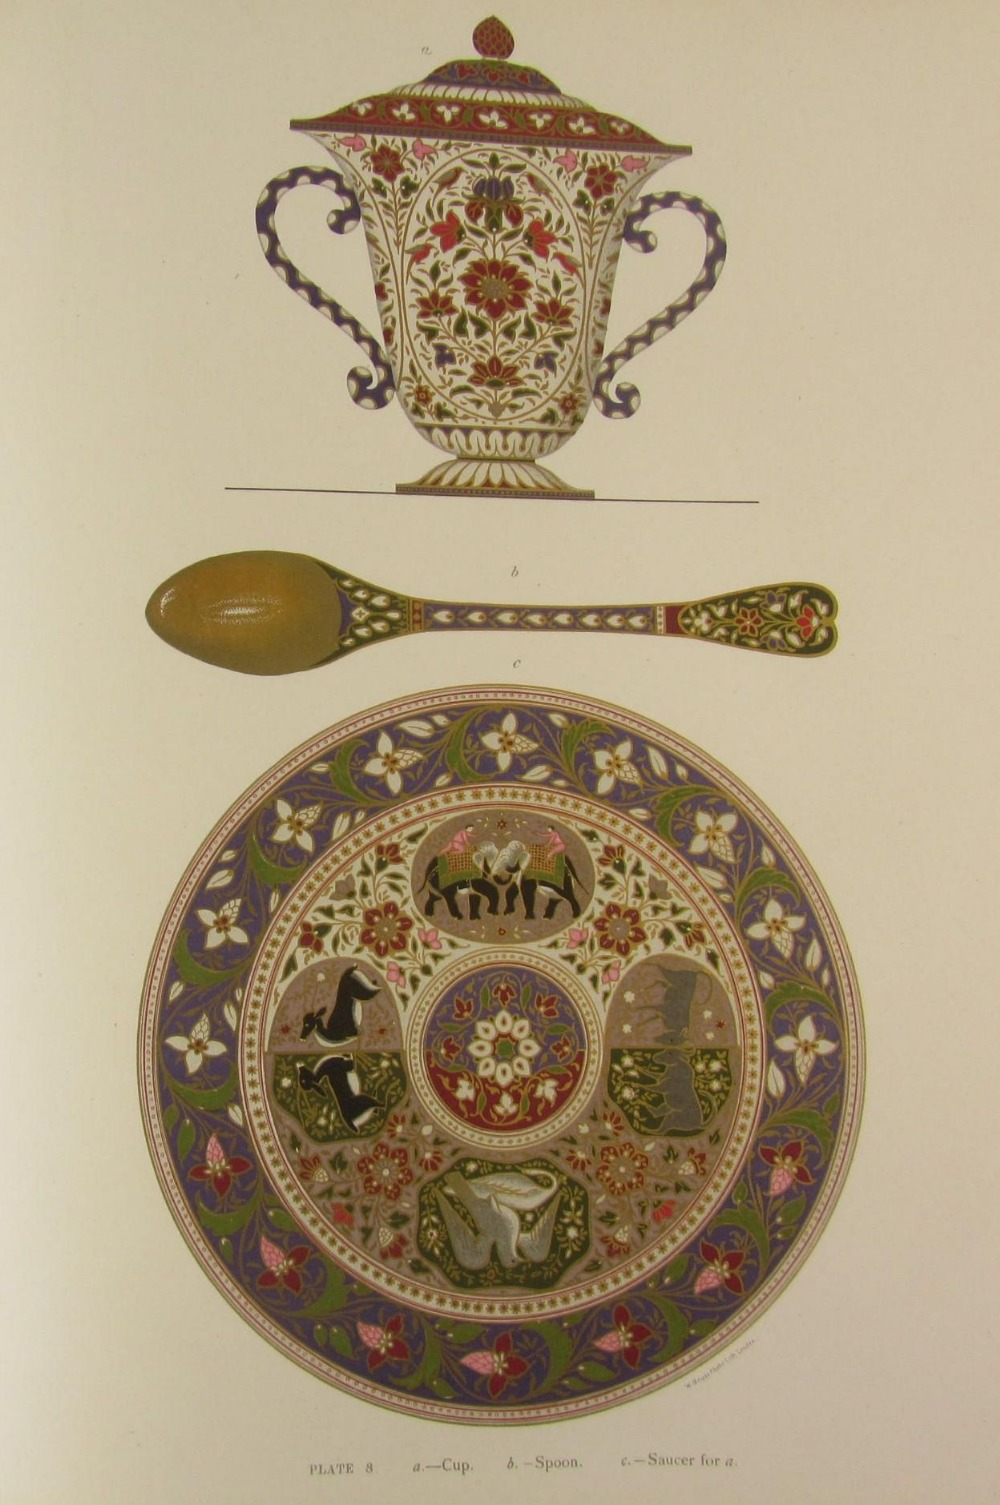 Jacob, S.S. and T.H. Hendley  Jeypore enamels. London: W. Griggs, 1886. Folio, 28 chromolithographed - Image 4 of 7